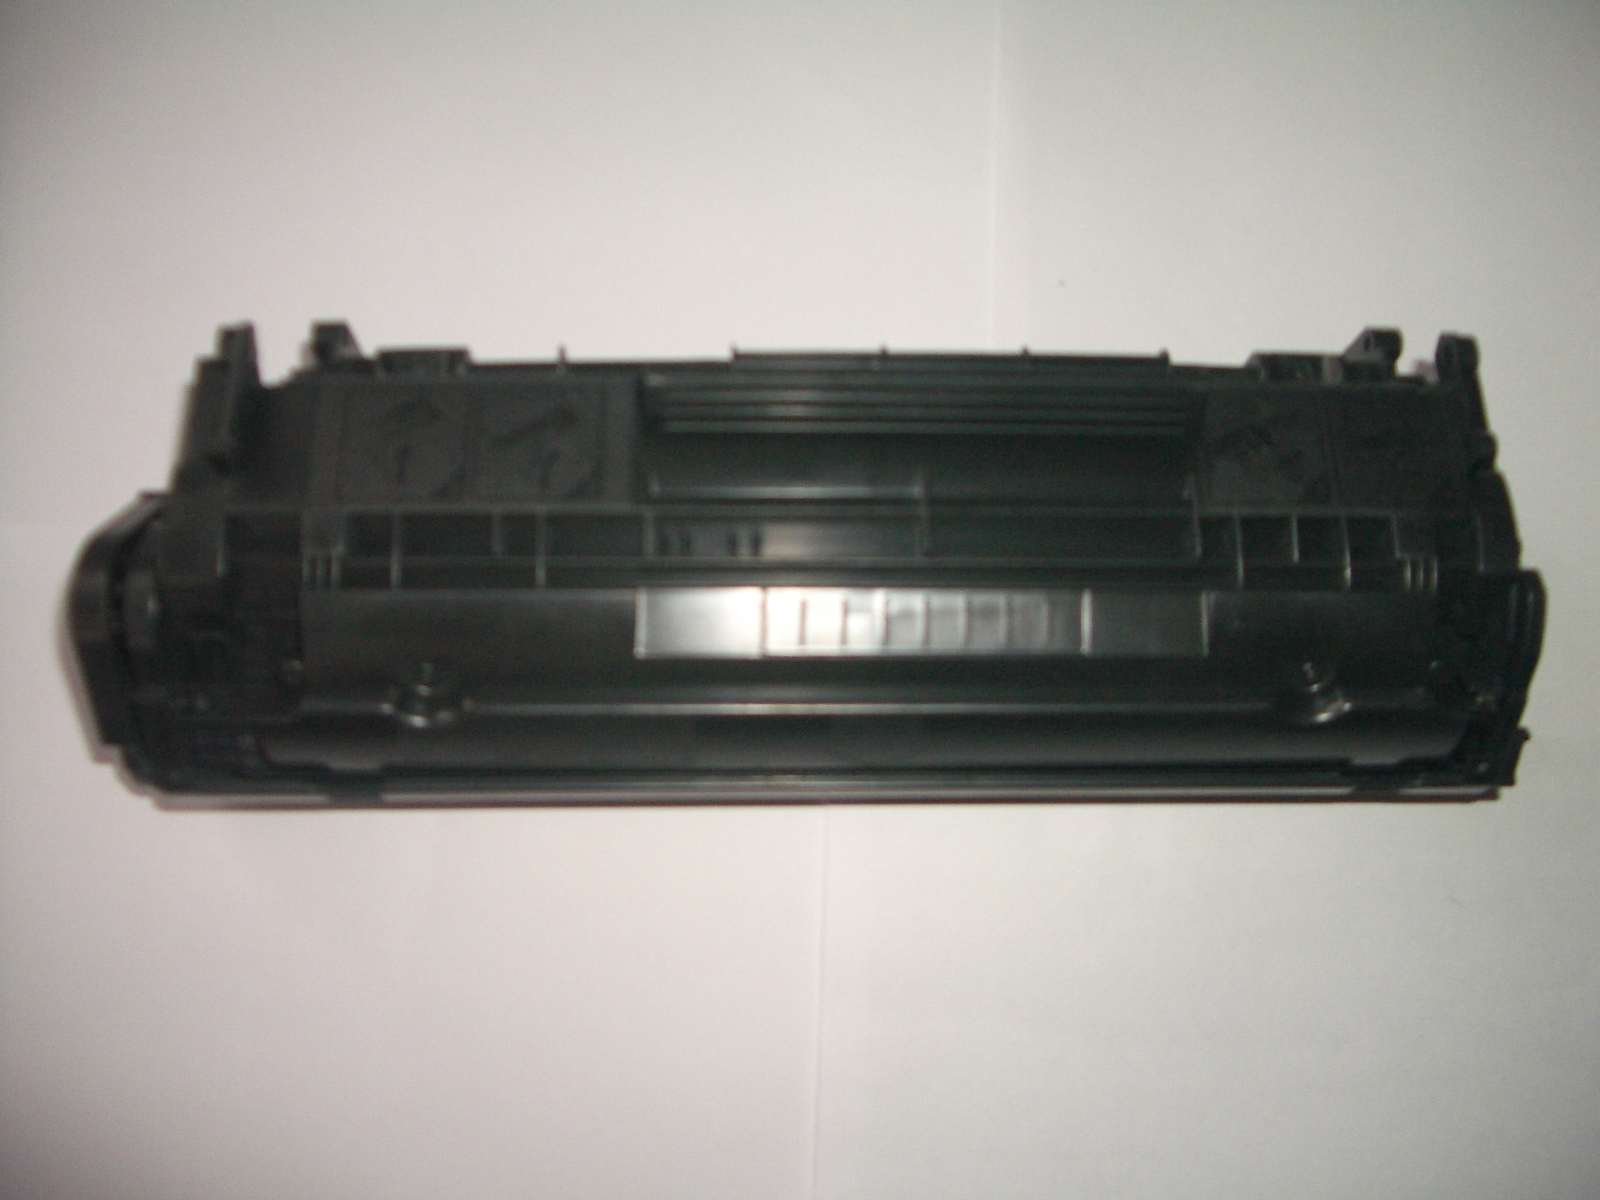 Toner cartridge, Parts, and Chips